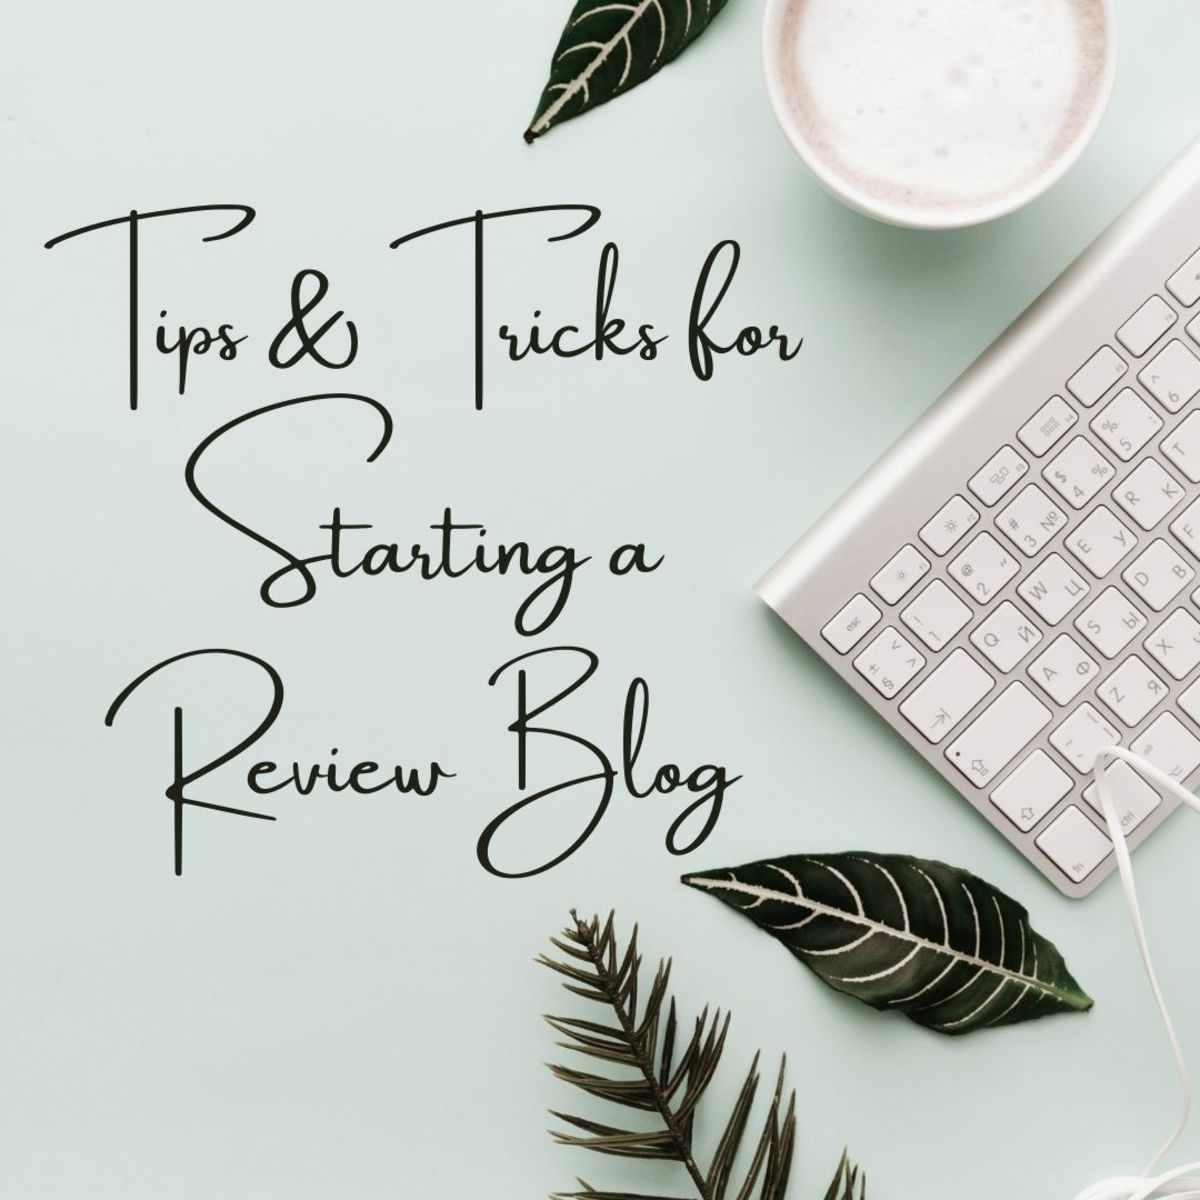 5 Tips for Starting a Review Blog